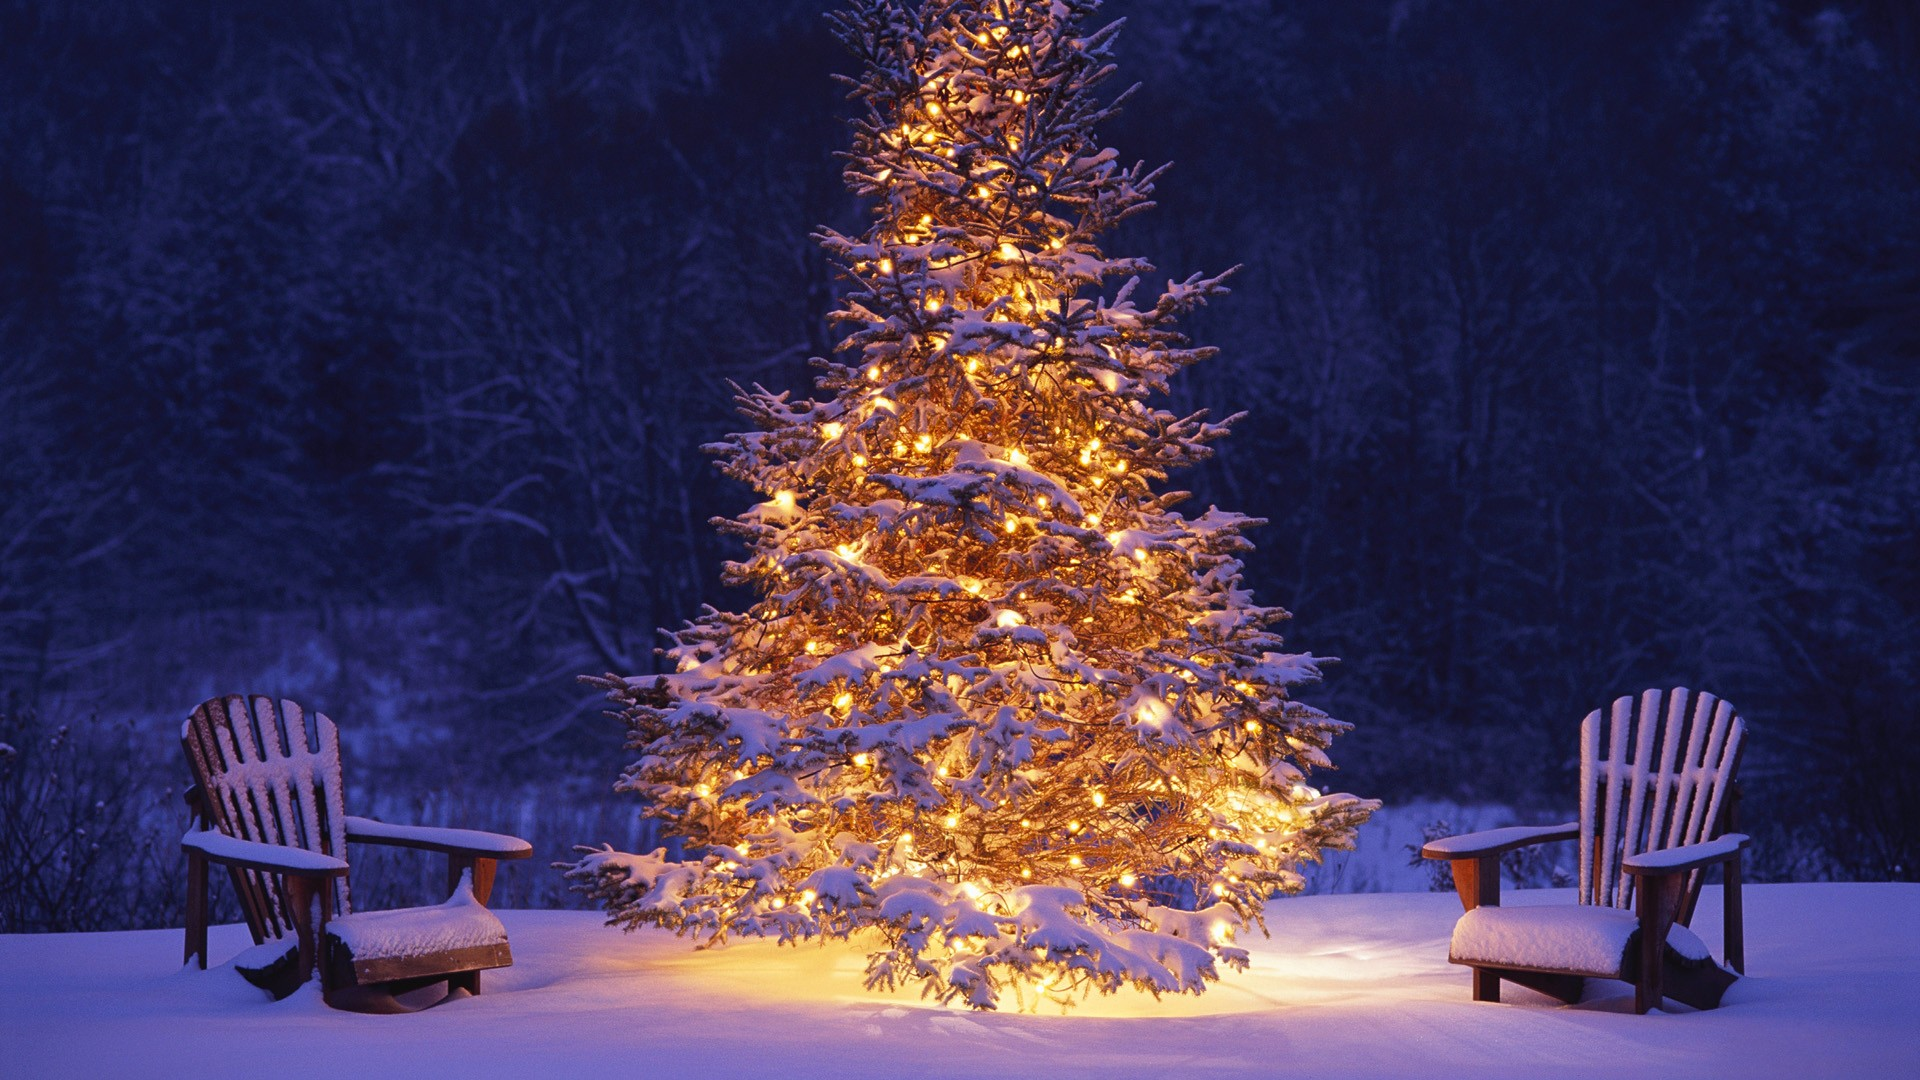 Merry Christmas HD Wallpapers Image Greetings [ Download]] 1920x1080